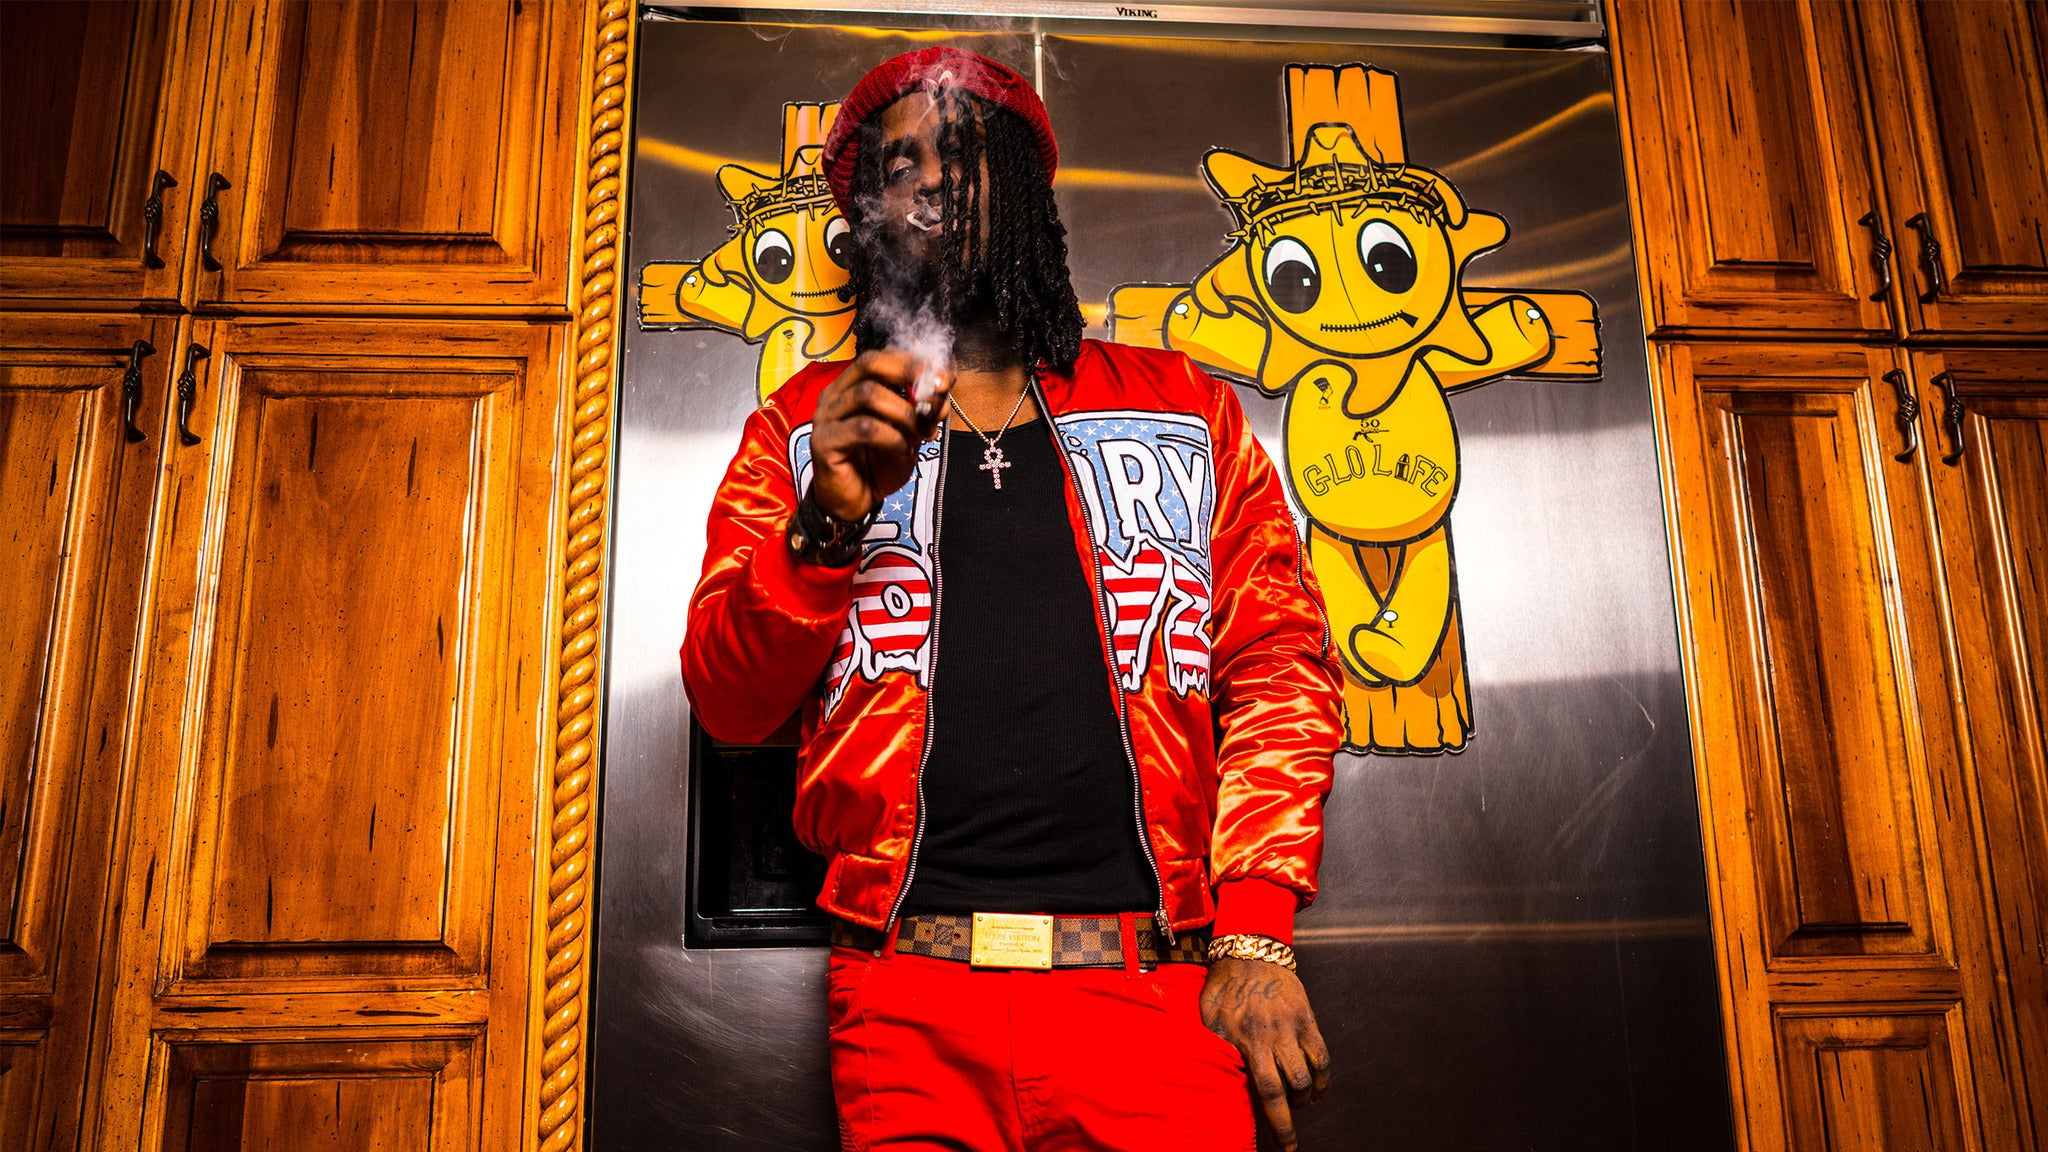 Chief Keef at Mesa Theatre & Club